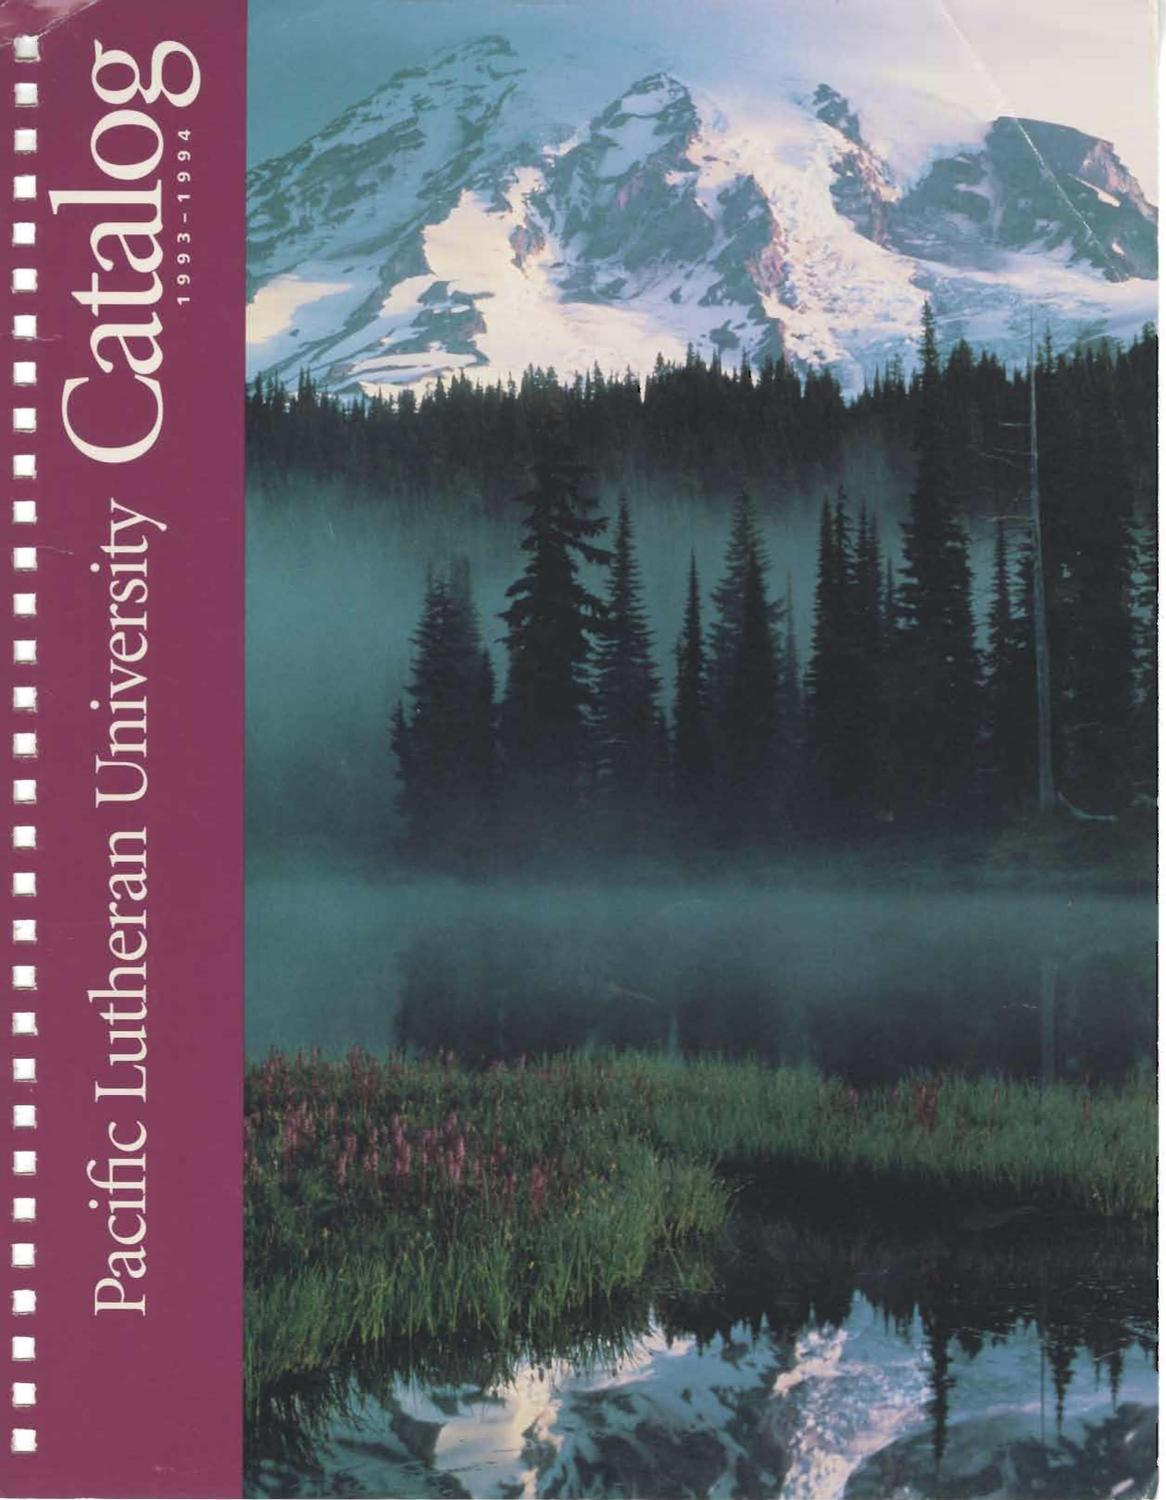 Catalog 1993 1994v73 No3 Aug 94 By Pacific Lutheran Analog Circuit Design Designing Amplifier Circuits Dennis Fichte University Archives Issuu